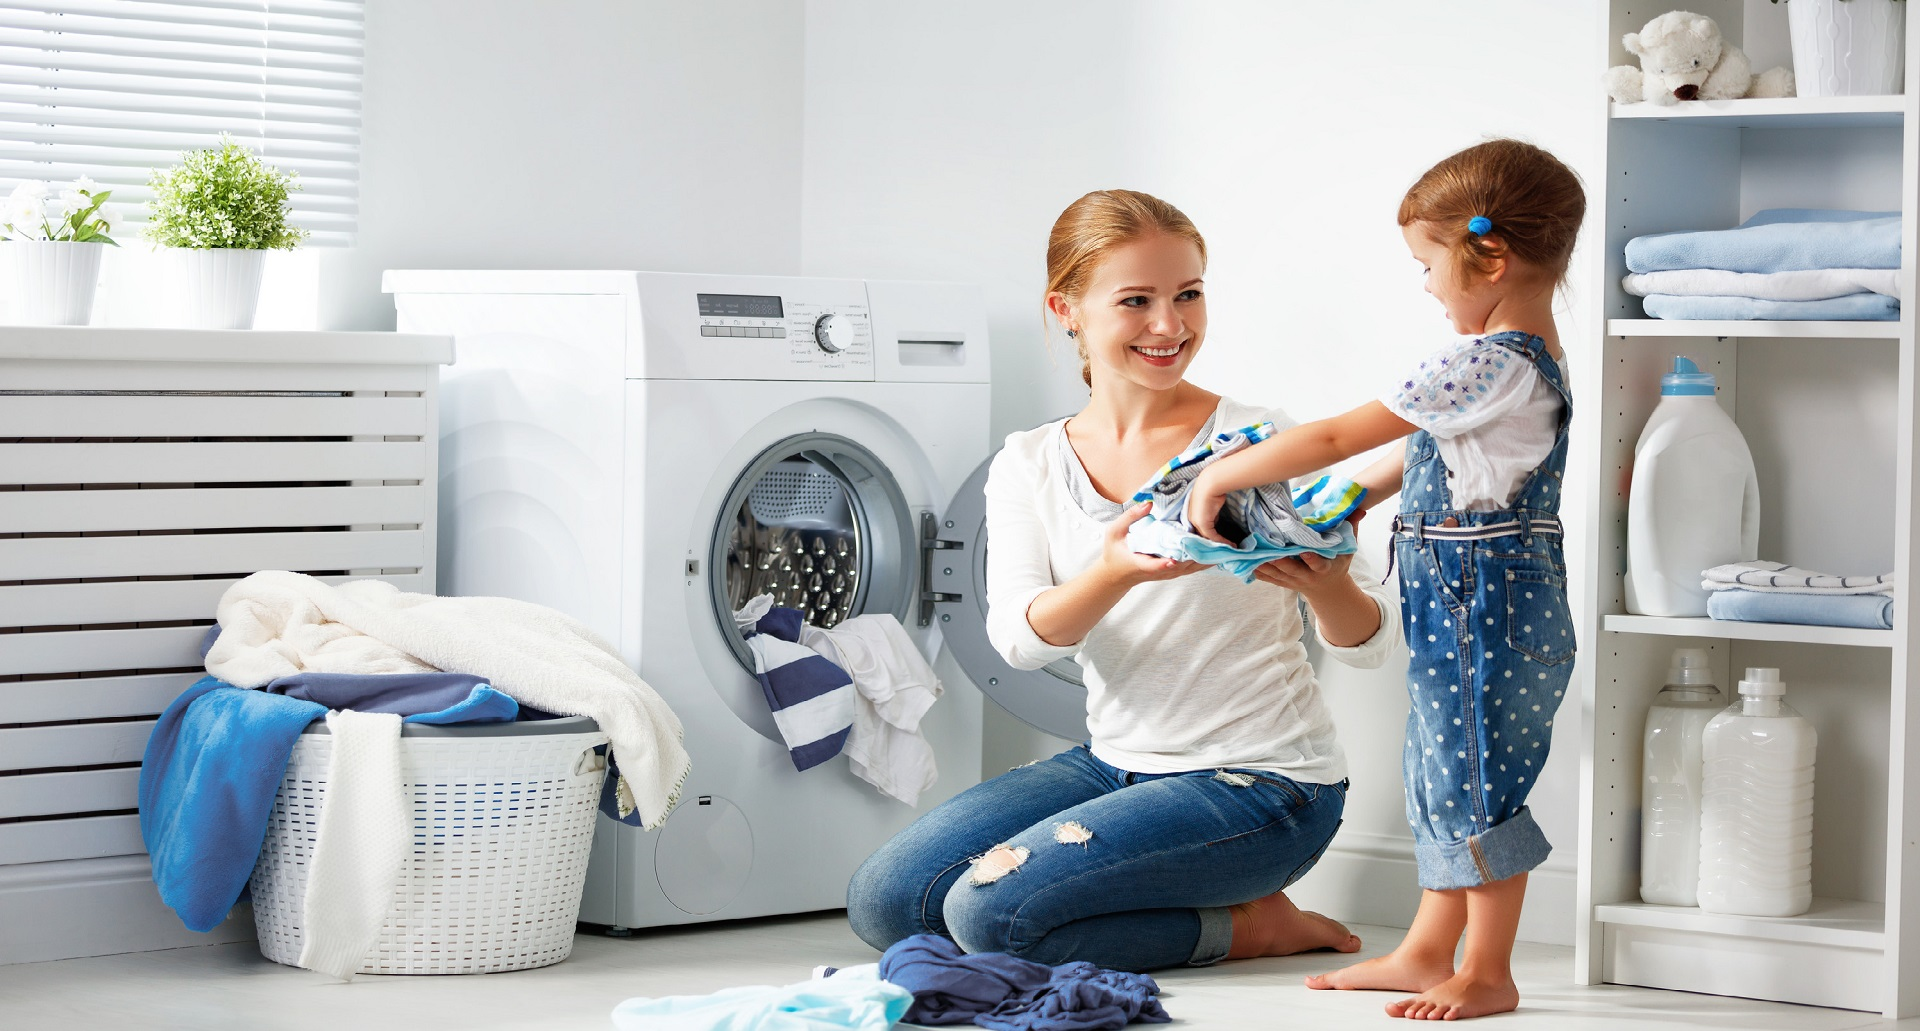 Residential Laundry